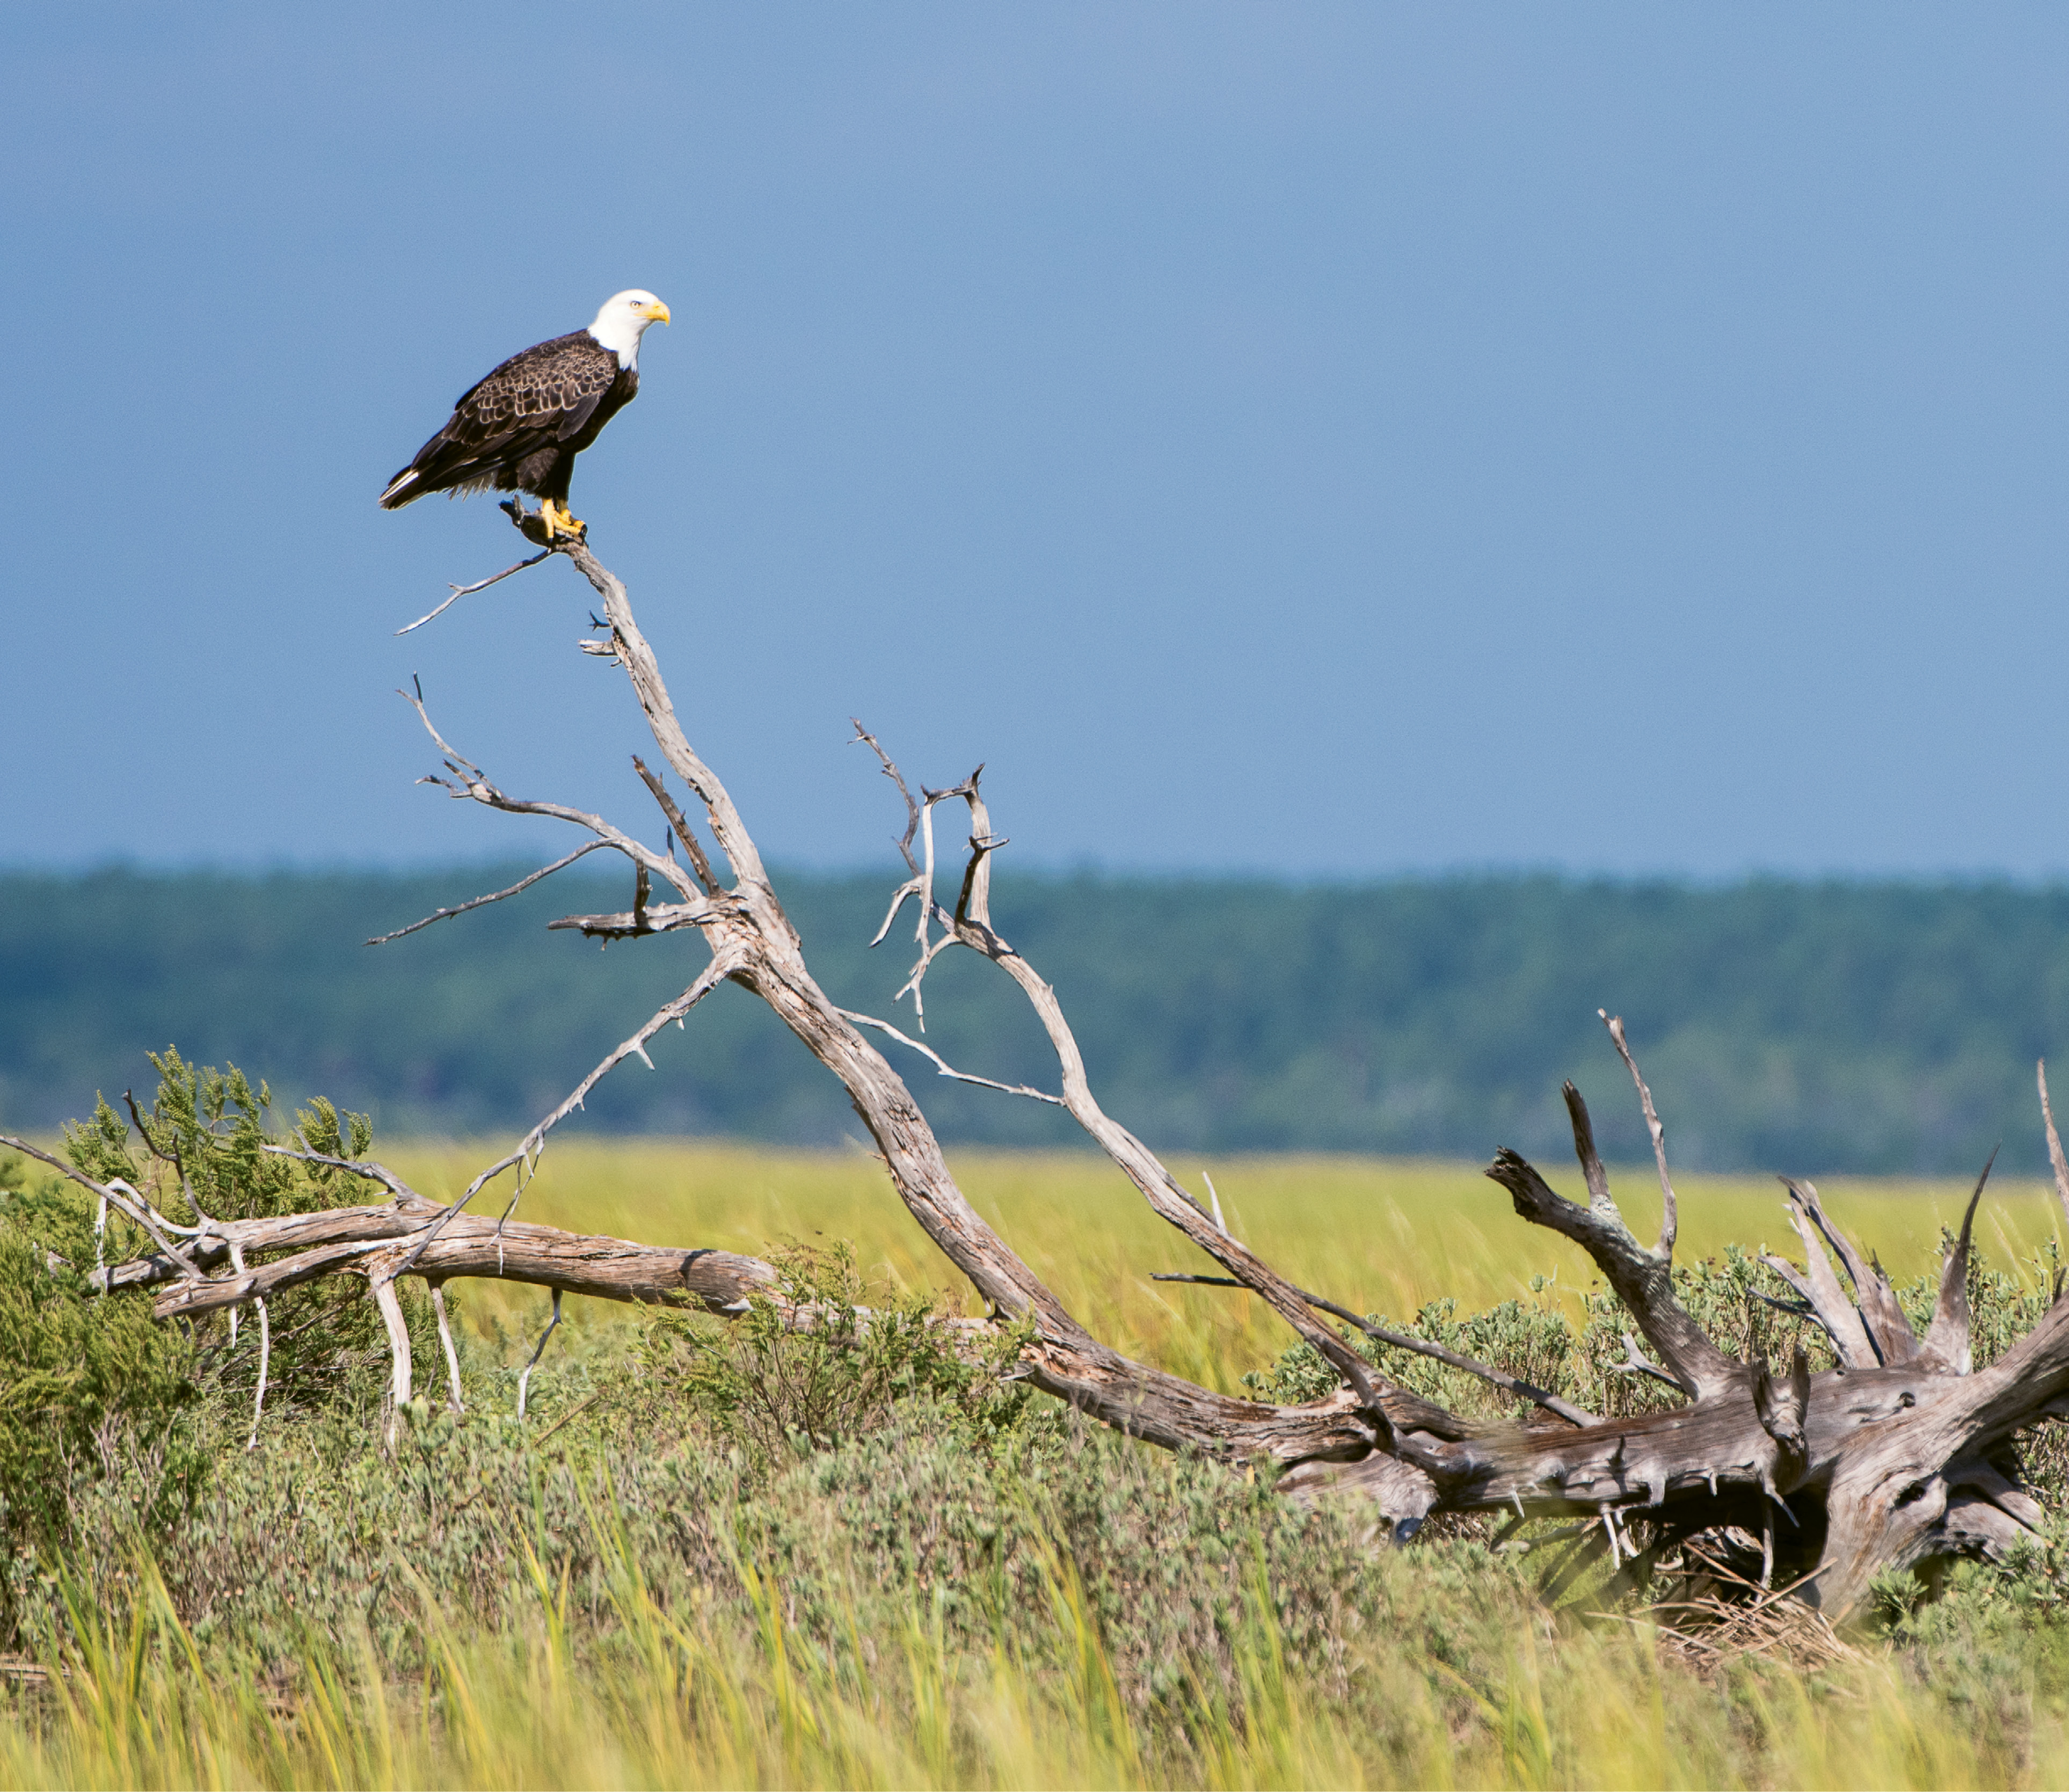 """Bald Eagle (Haliaeetus leucocephalus) - A wild eagle in Cape Romain National Wildlife Refuge near Bulls Island; Learn more about the Center for Birds of Prey and how you can help at <a href=""""http://www.thecenterforbirdsofprey.org/"""">http://www.thecenterforbirdsofprey.org/</a>."""